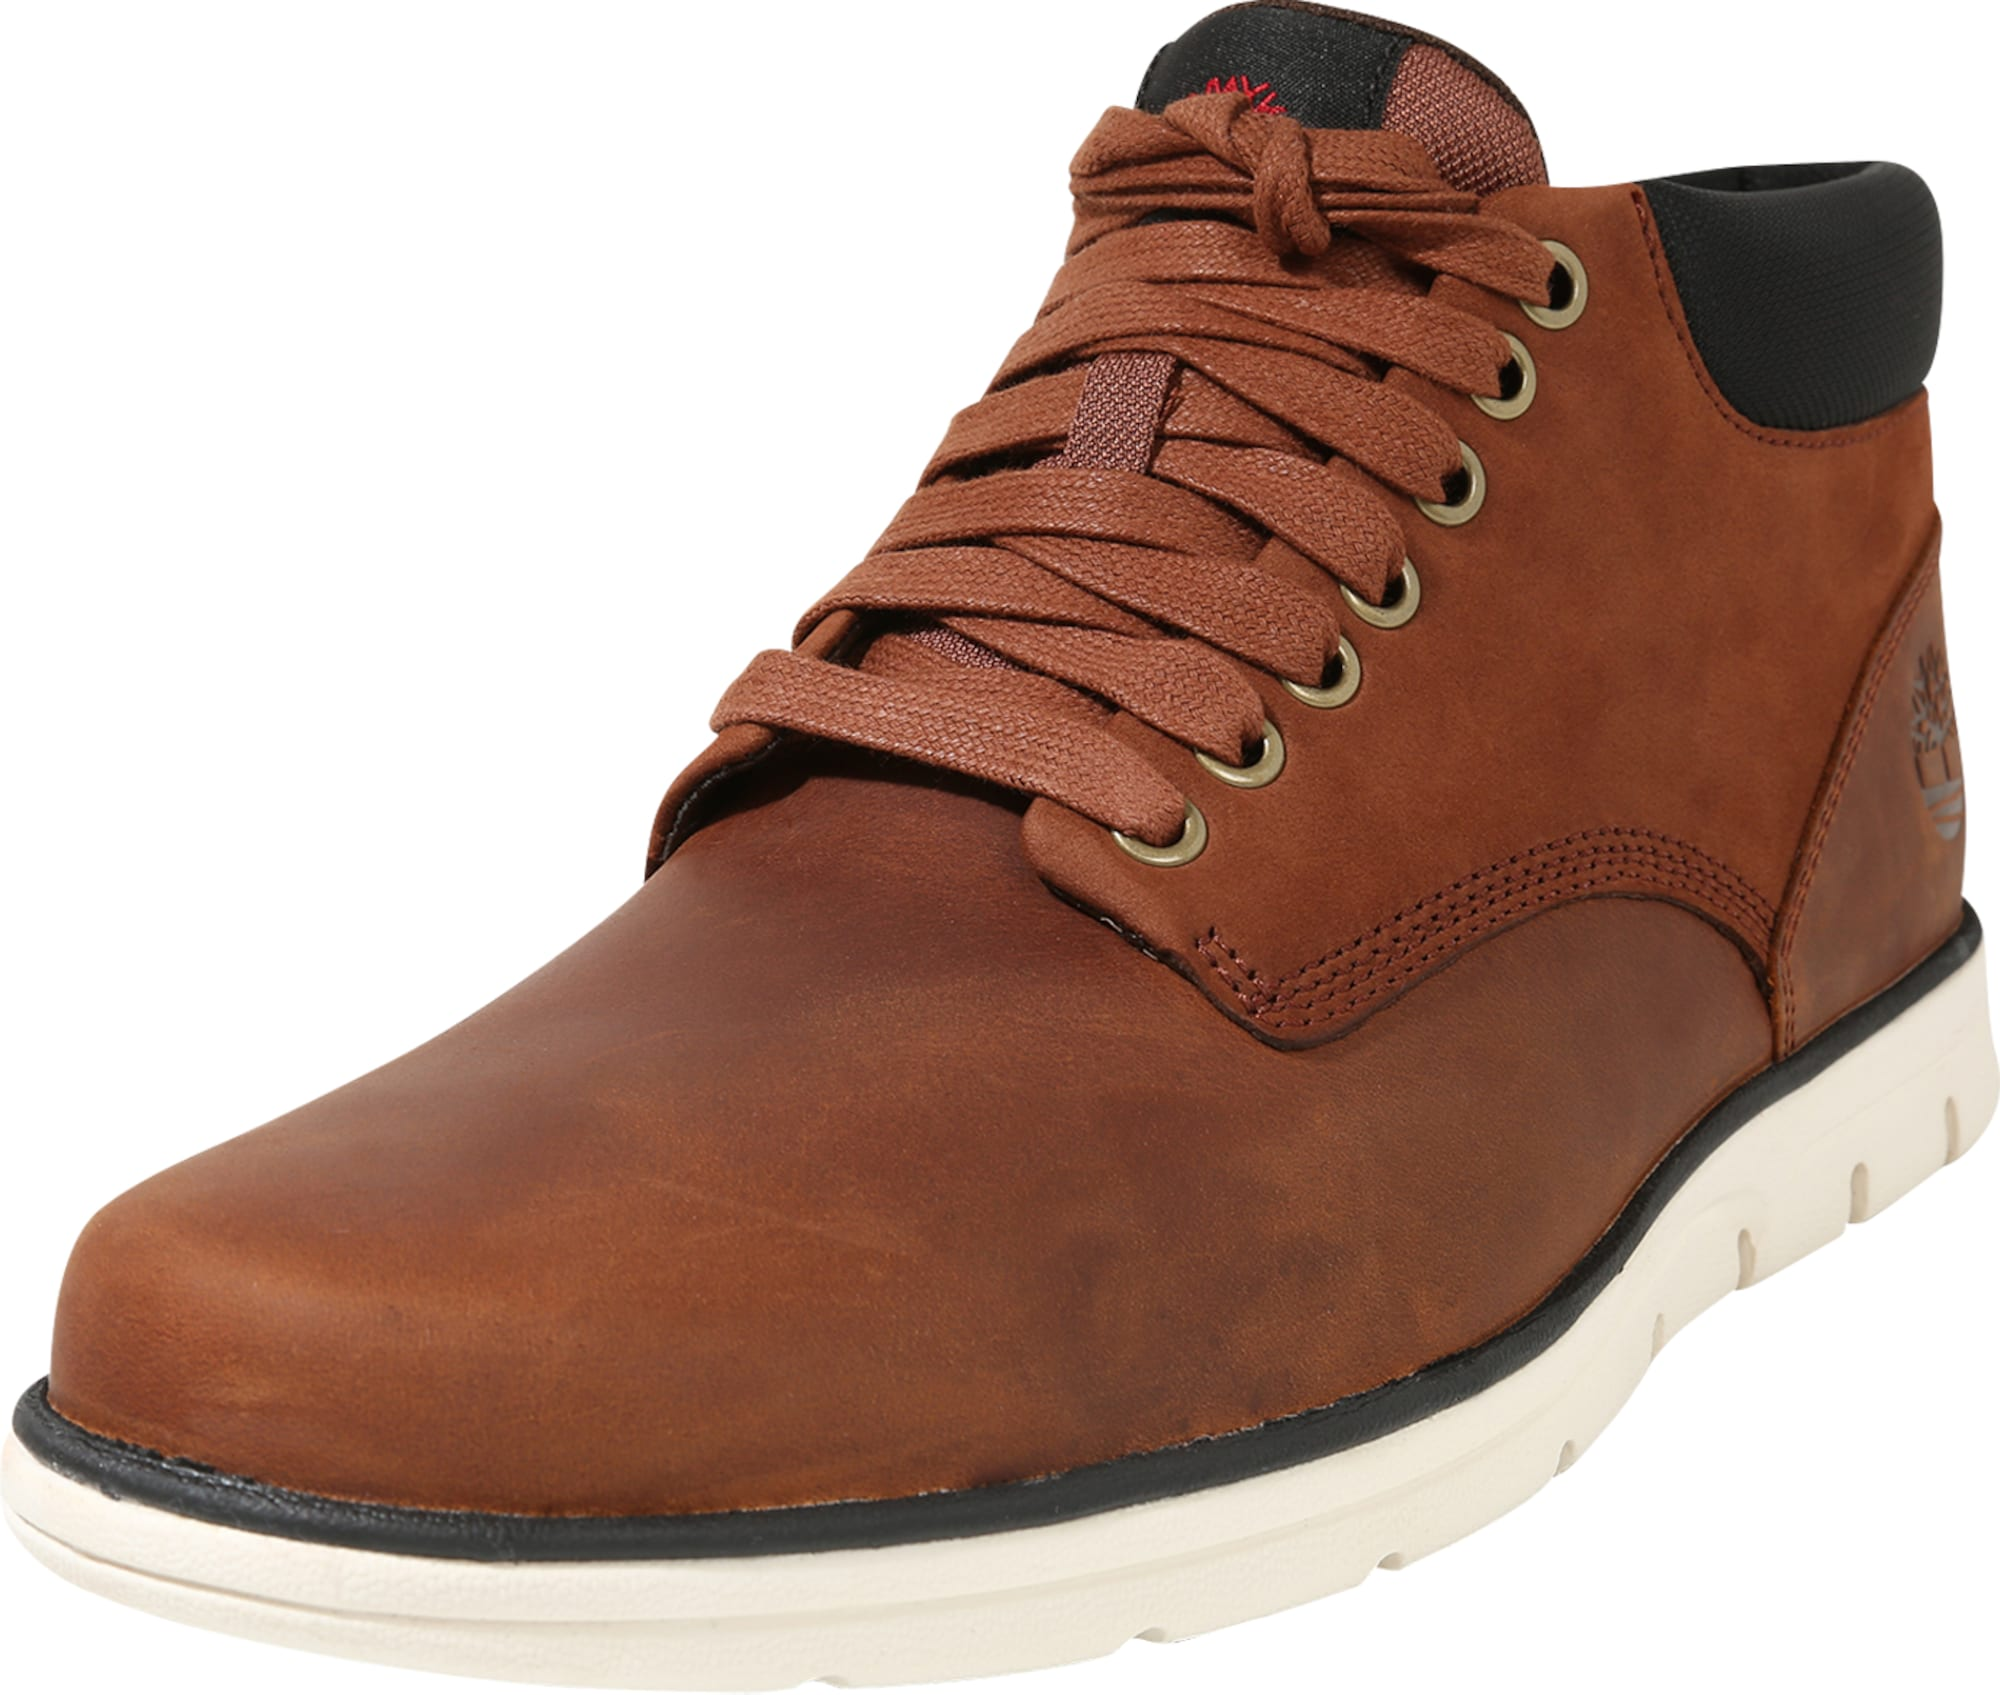 timberland boots 39 bradstreet chukka 39 in braun about you. Black Bedroom Furniture Sets. Home Design Ideas